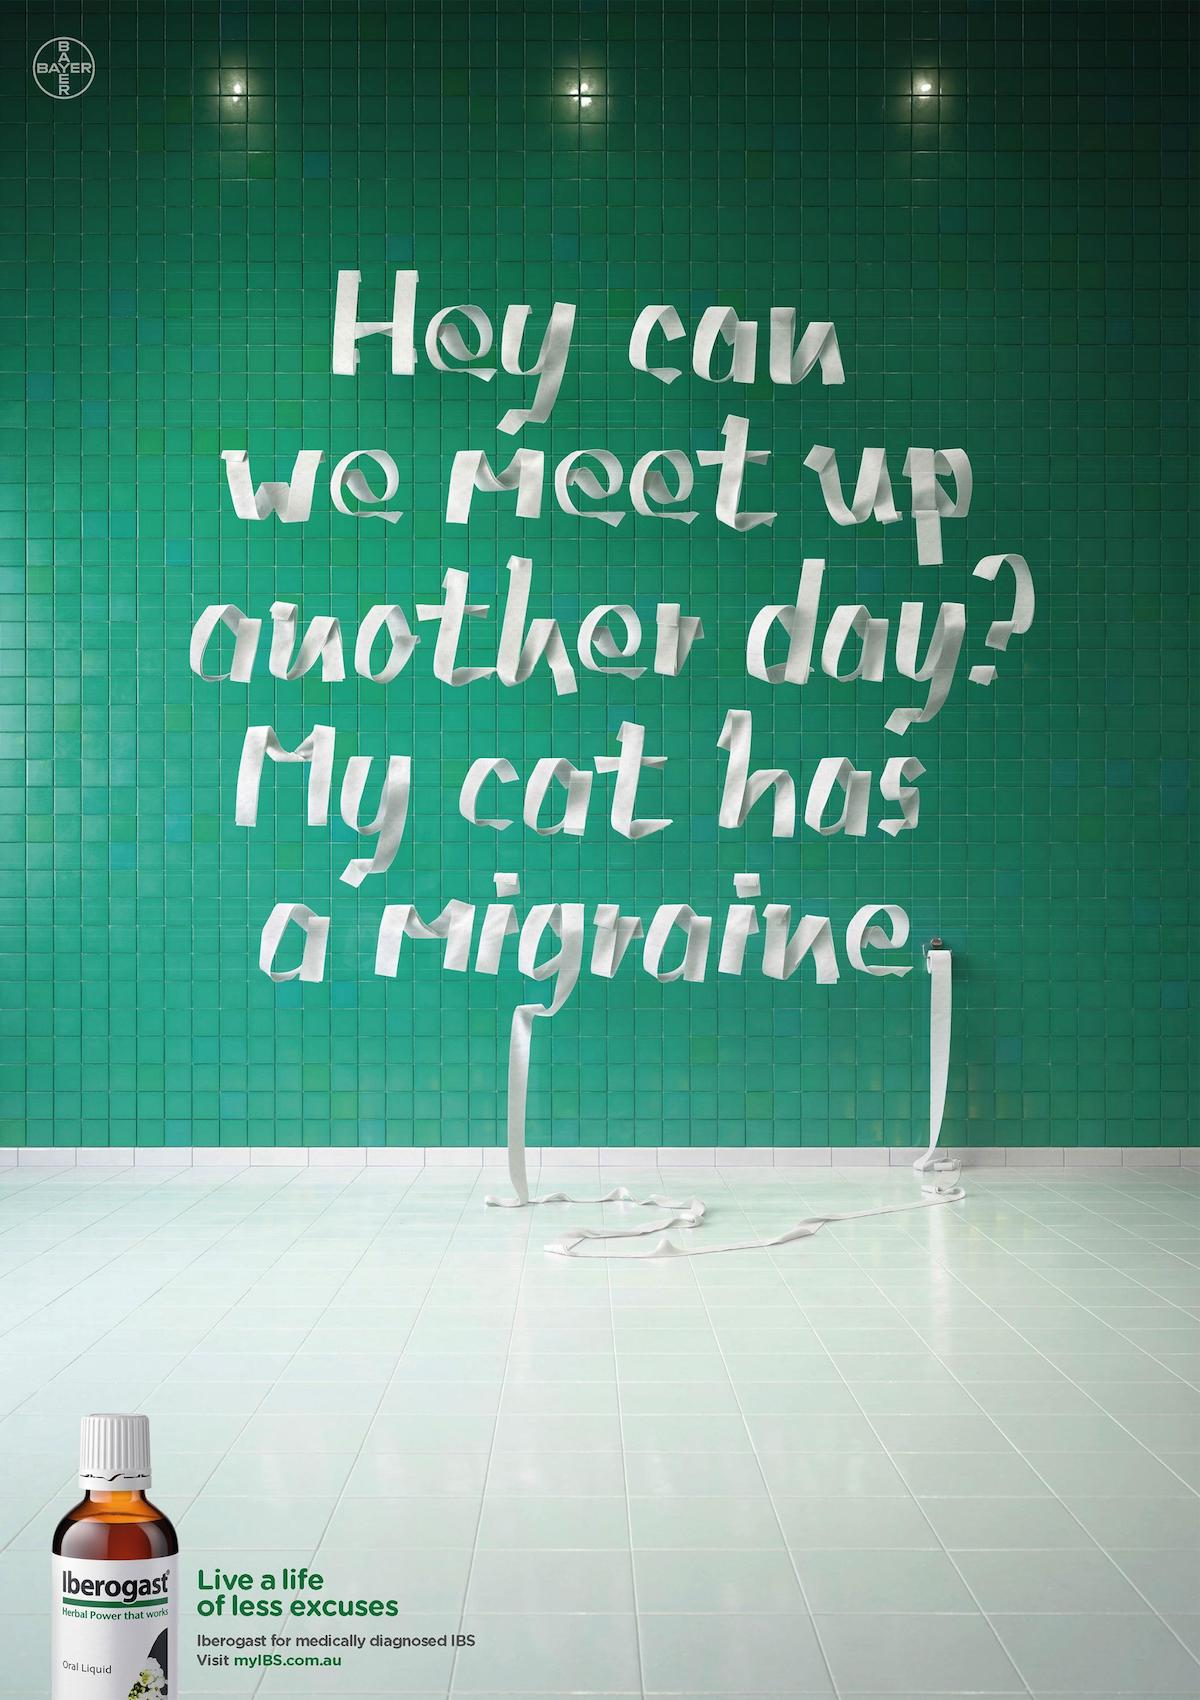 Creative Typography Ads - Bayer Iberogast: Less Excuses